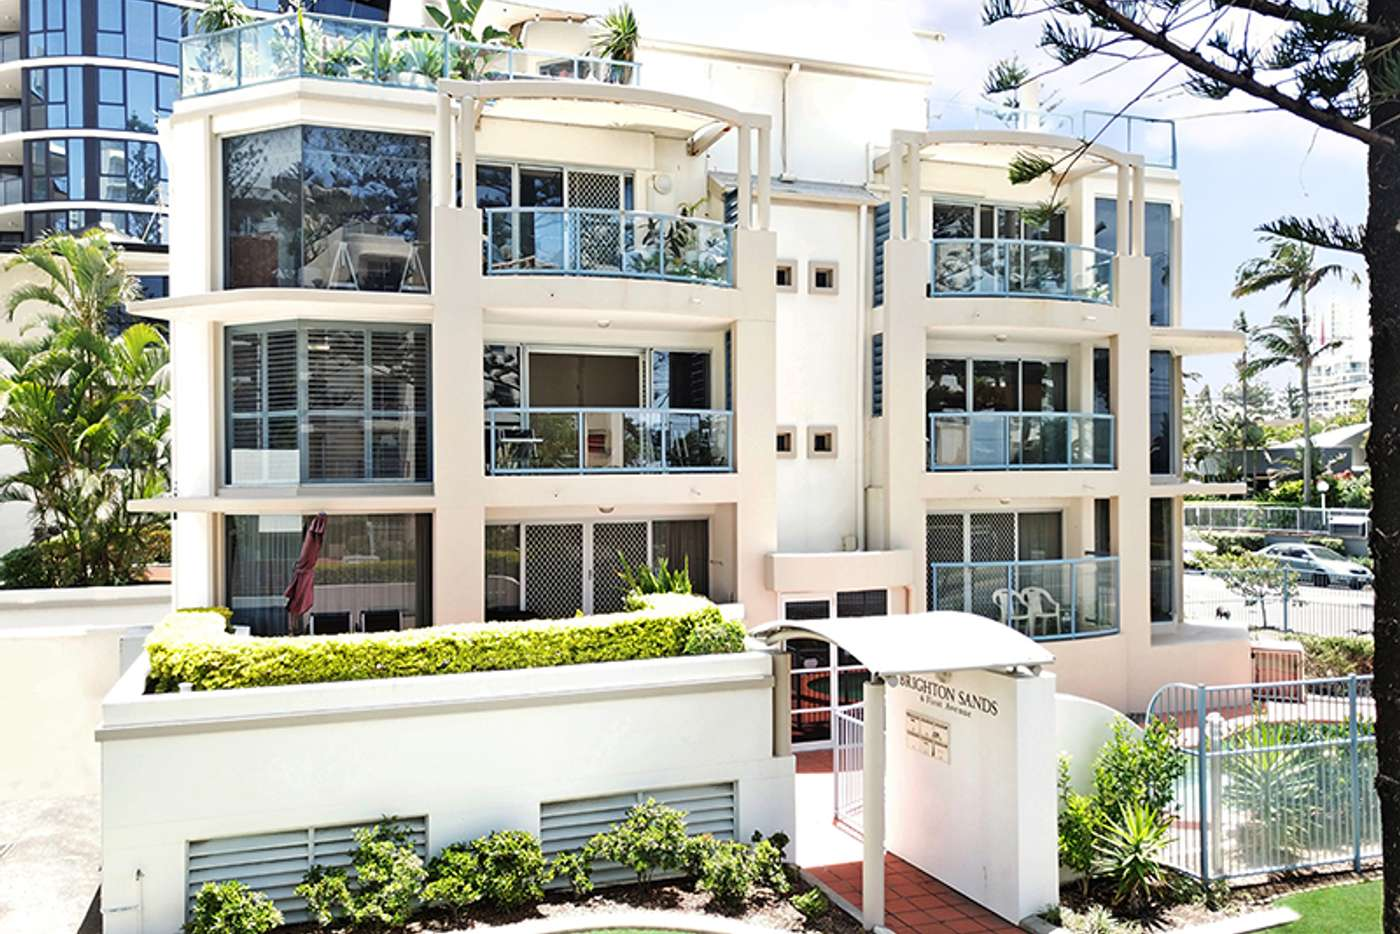 Main view of Homely apartment listing, 3/6 First Avenue, Broadbeach QLD 4218